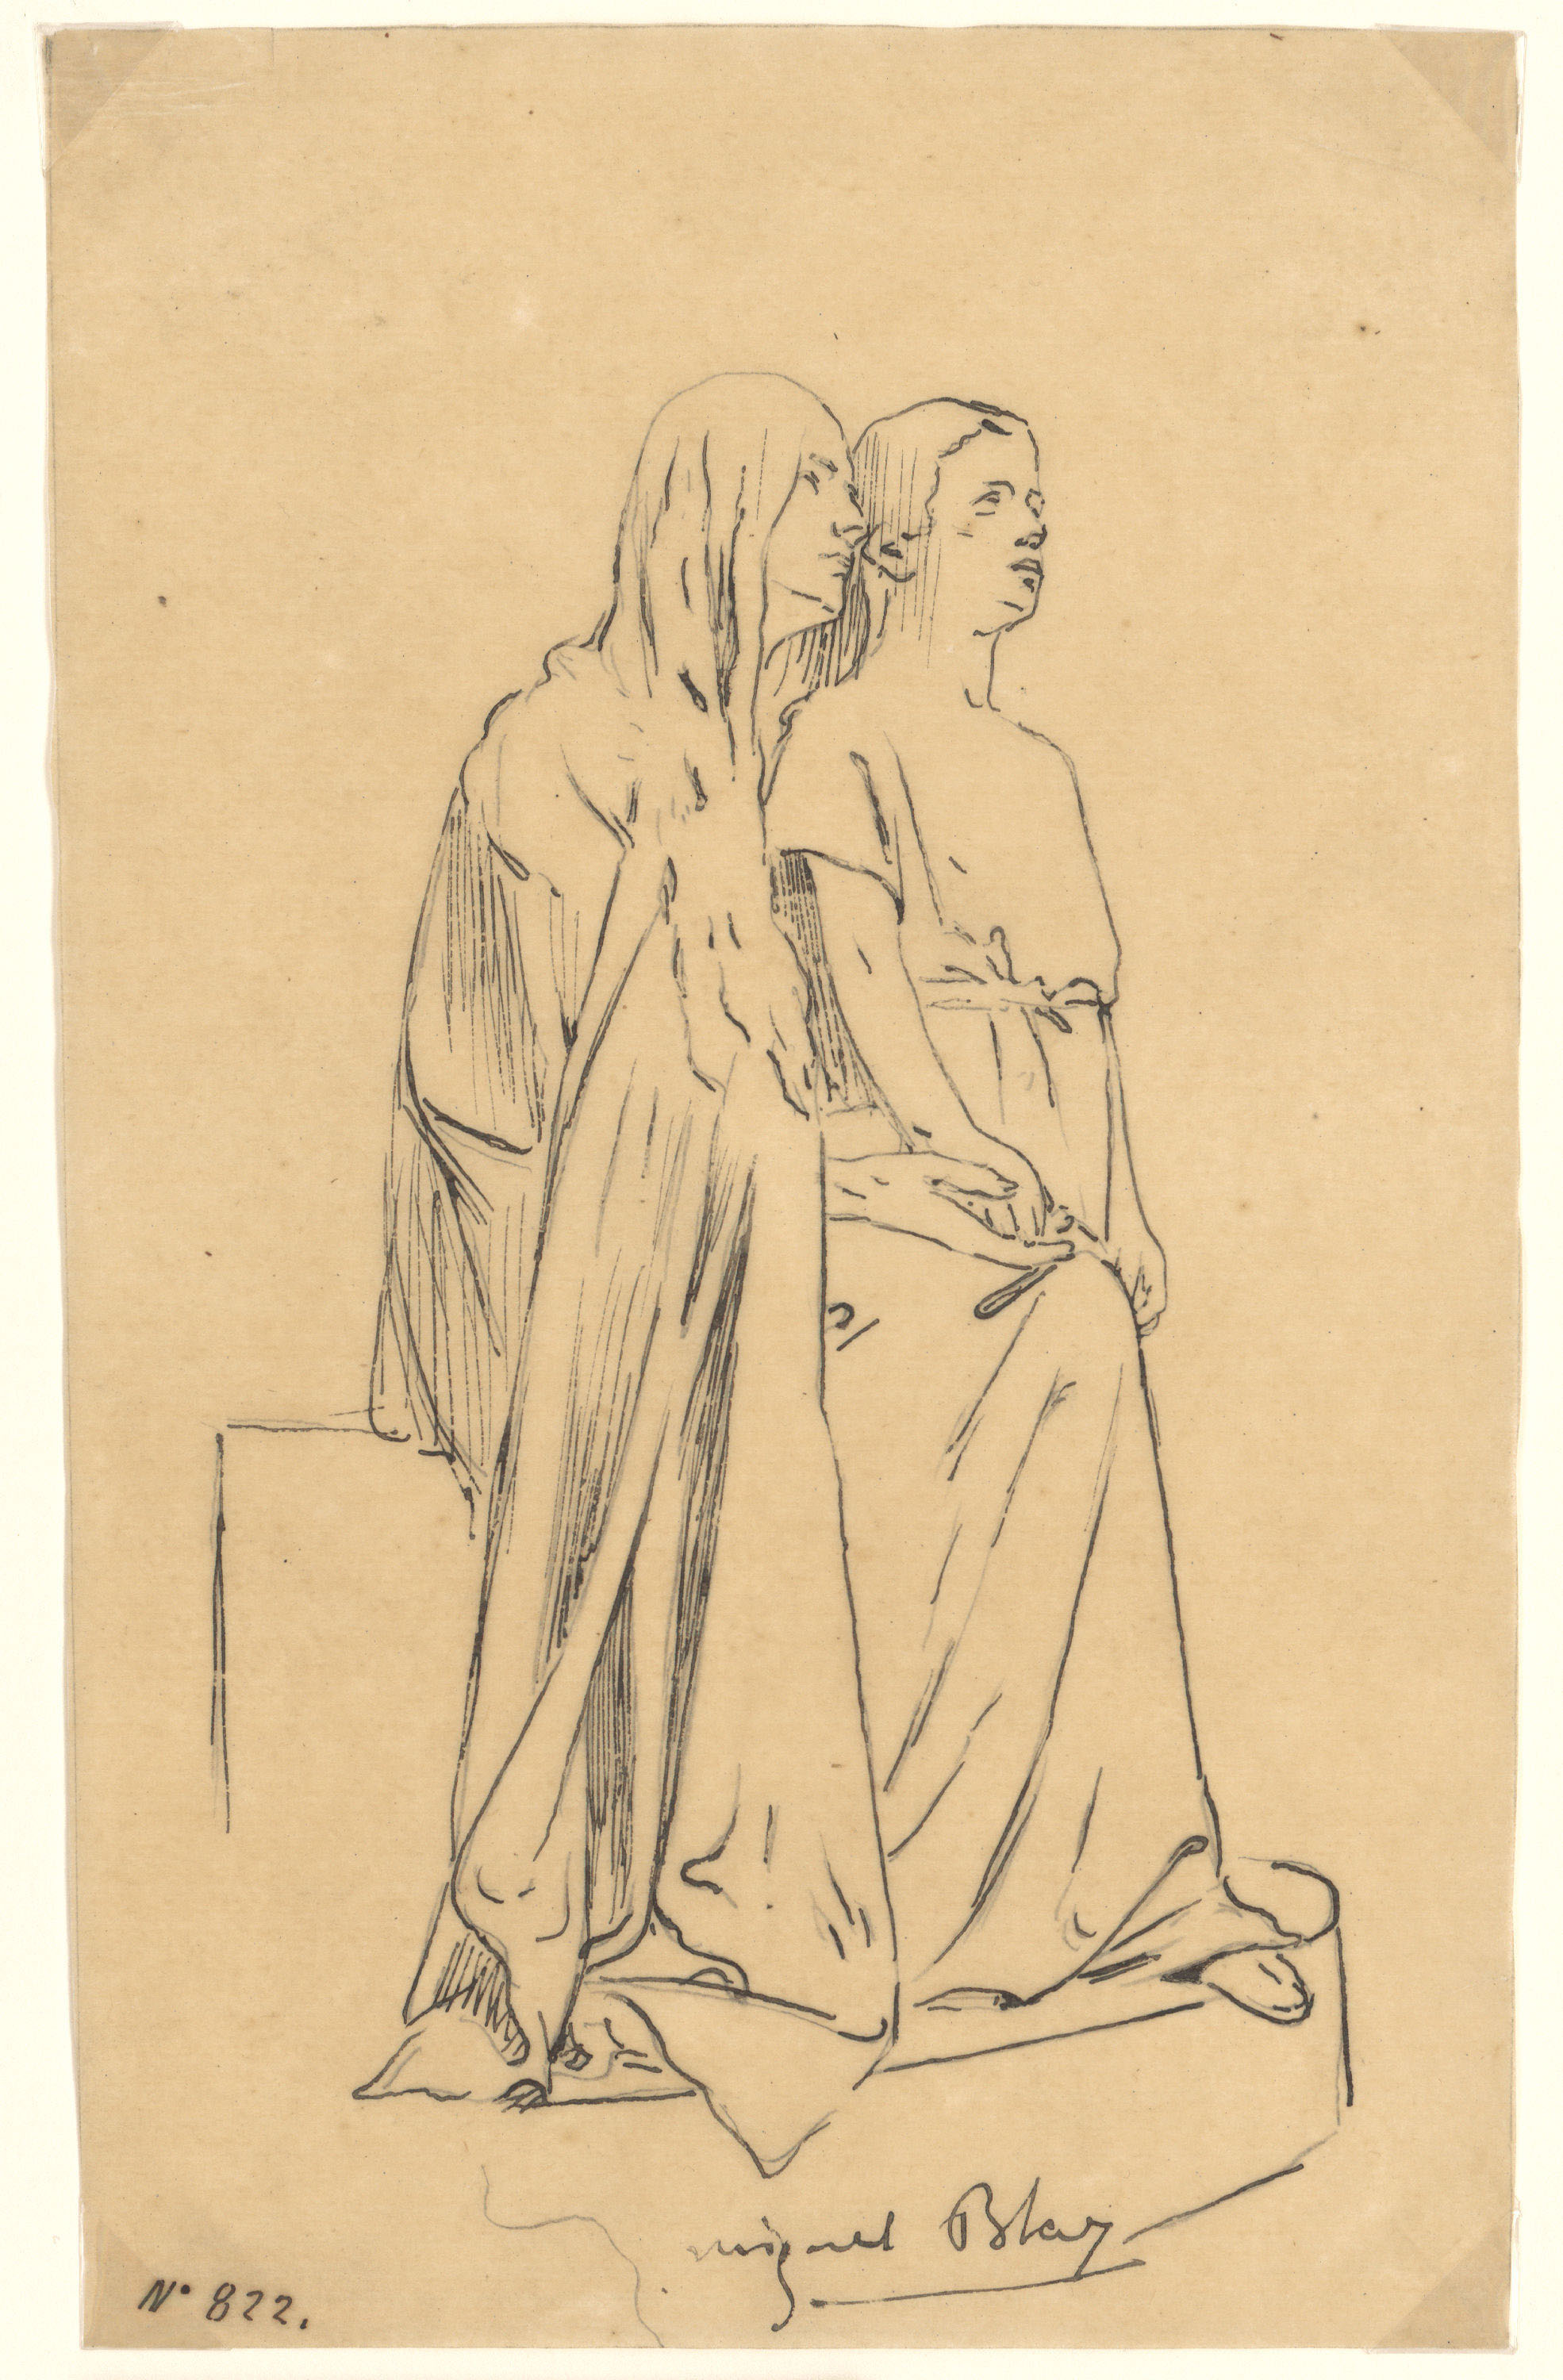 Miquel Blay - Faith or The Believers, study for the sculpture of the tomb of Joaquín María de Errazu at the Père Lachaise cemetery (Paris) - 1898